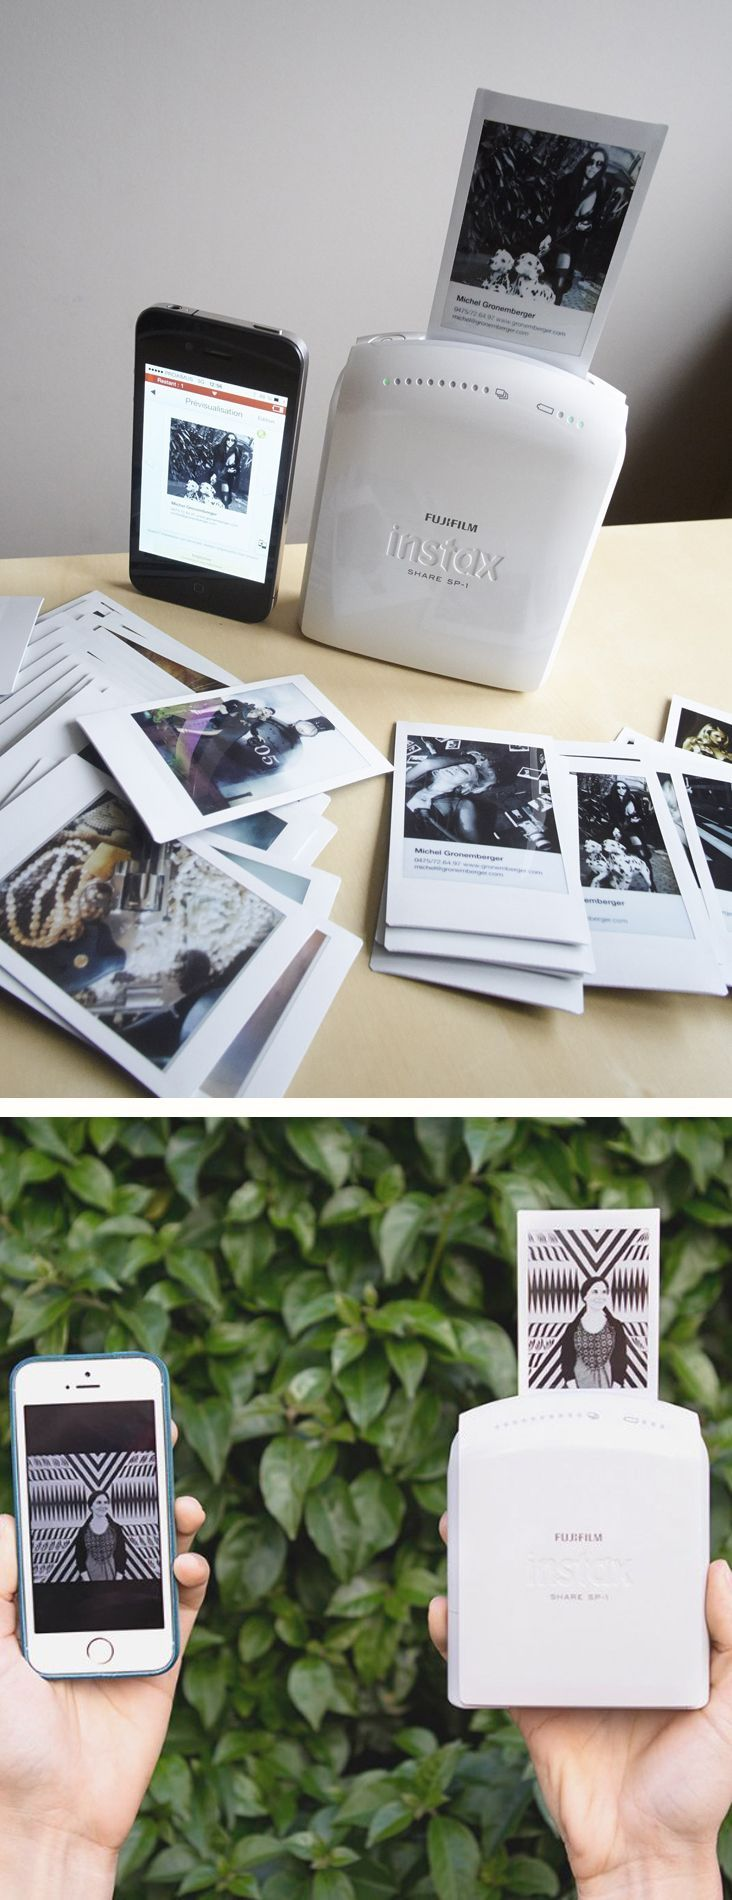 Print the pictures from your Smartphone the Polaroid style: Fujifilm Instax Share Smartphone Printer SP-1 - http://www.MyWonderList.com #smartphone #printer